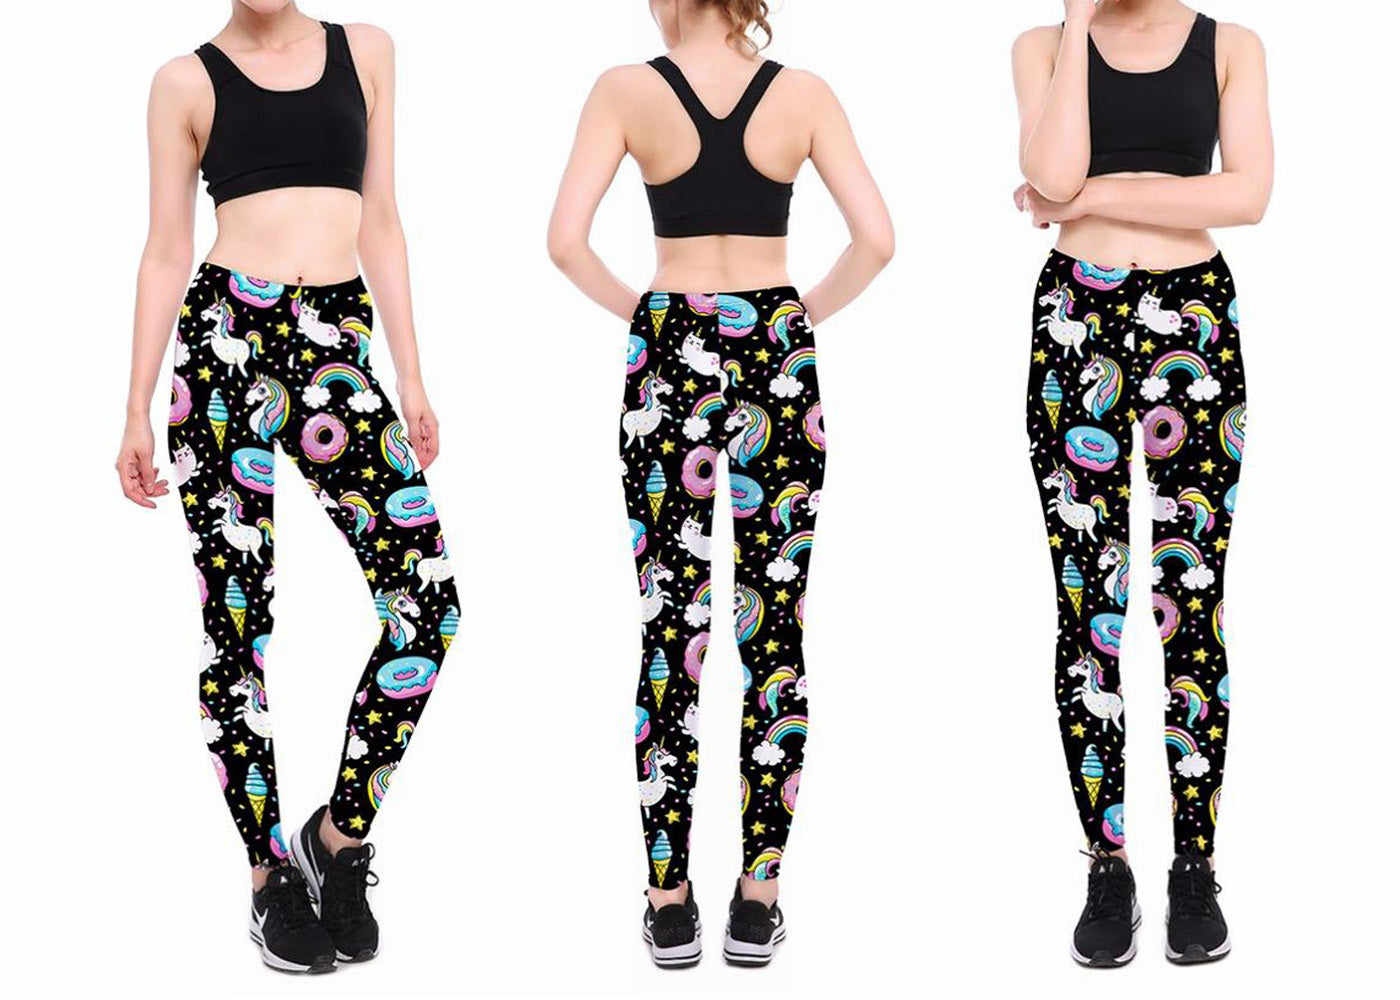 86b0cba652da2f Space Unicorn Leggings – Online Legging Store